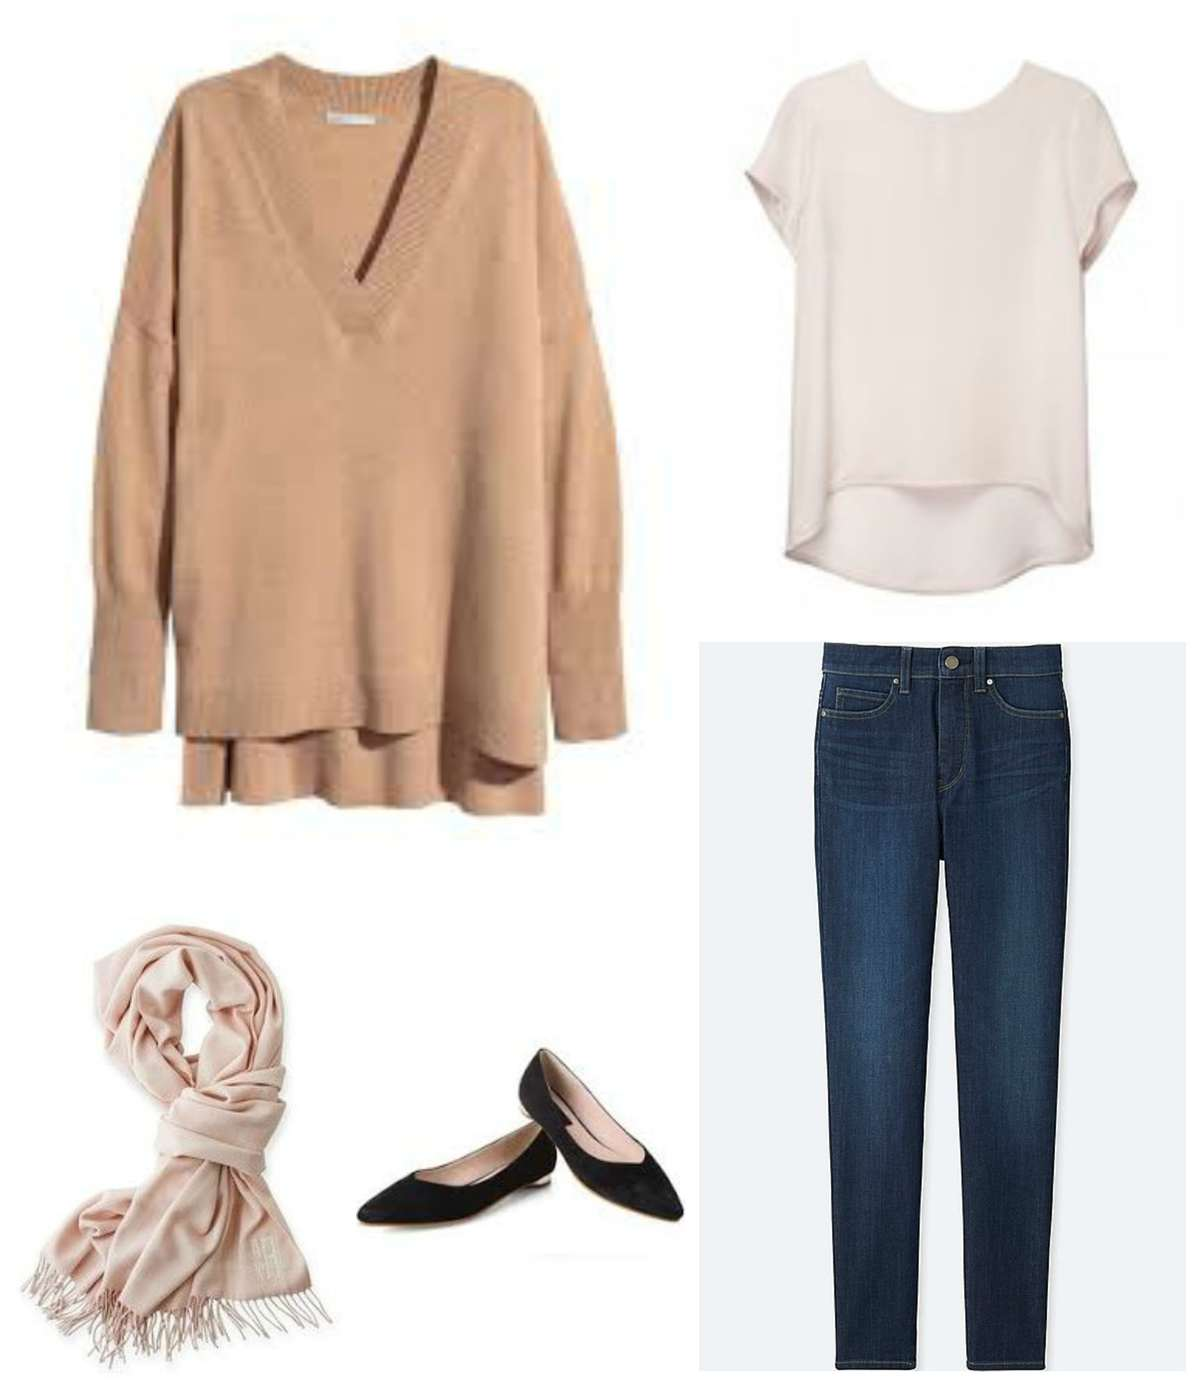 An outfit made from the travel capsule wardrobe - oversized camel sweater with a blush silk t-shirt, dark ankle jeans, pointed toe black flats, and a cream pashmina.